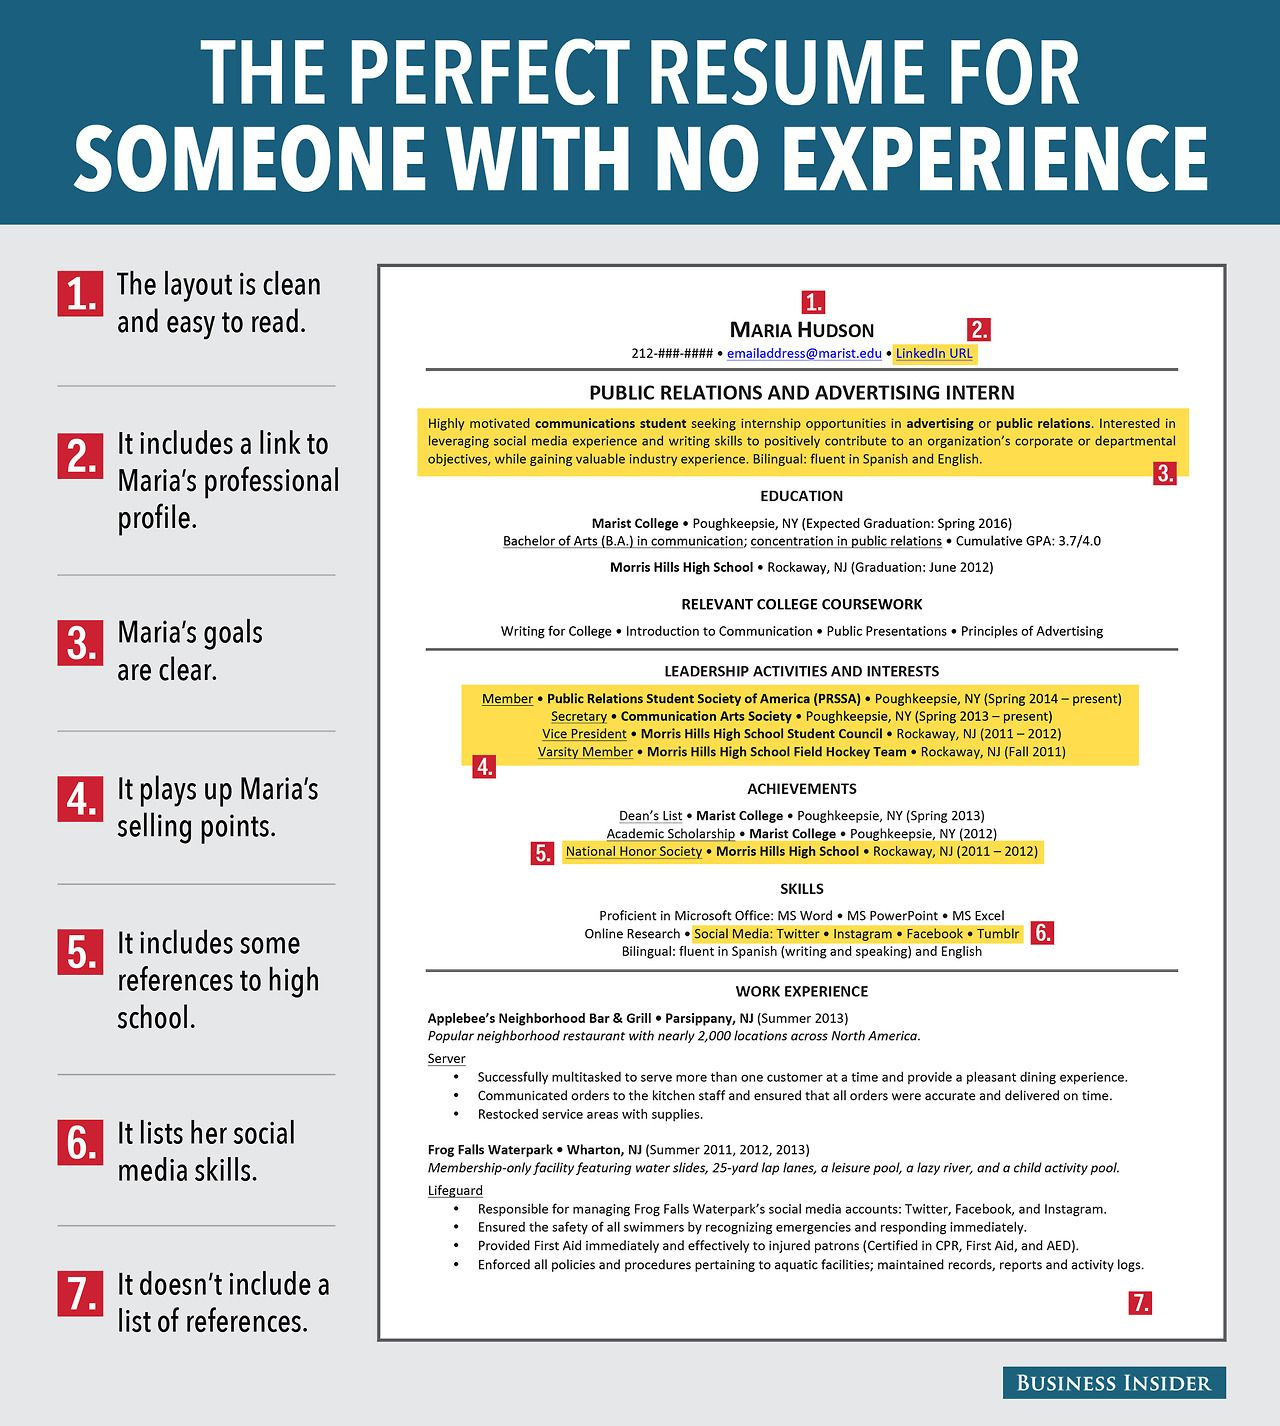 Beautiful 7 Reasons This Is An Excellent Resume For Someone With No Experience